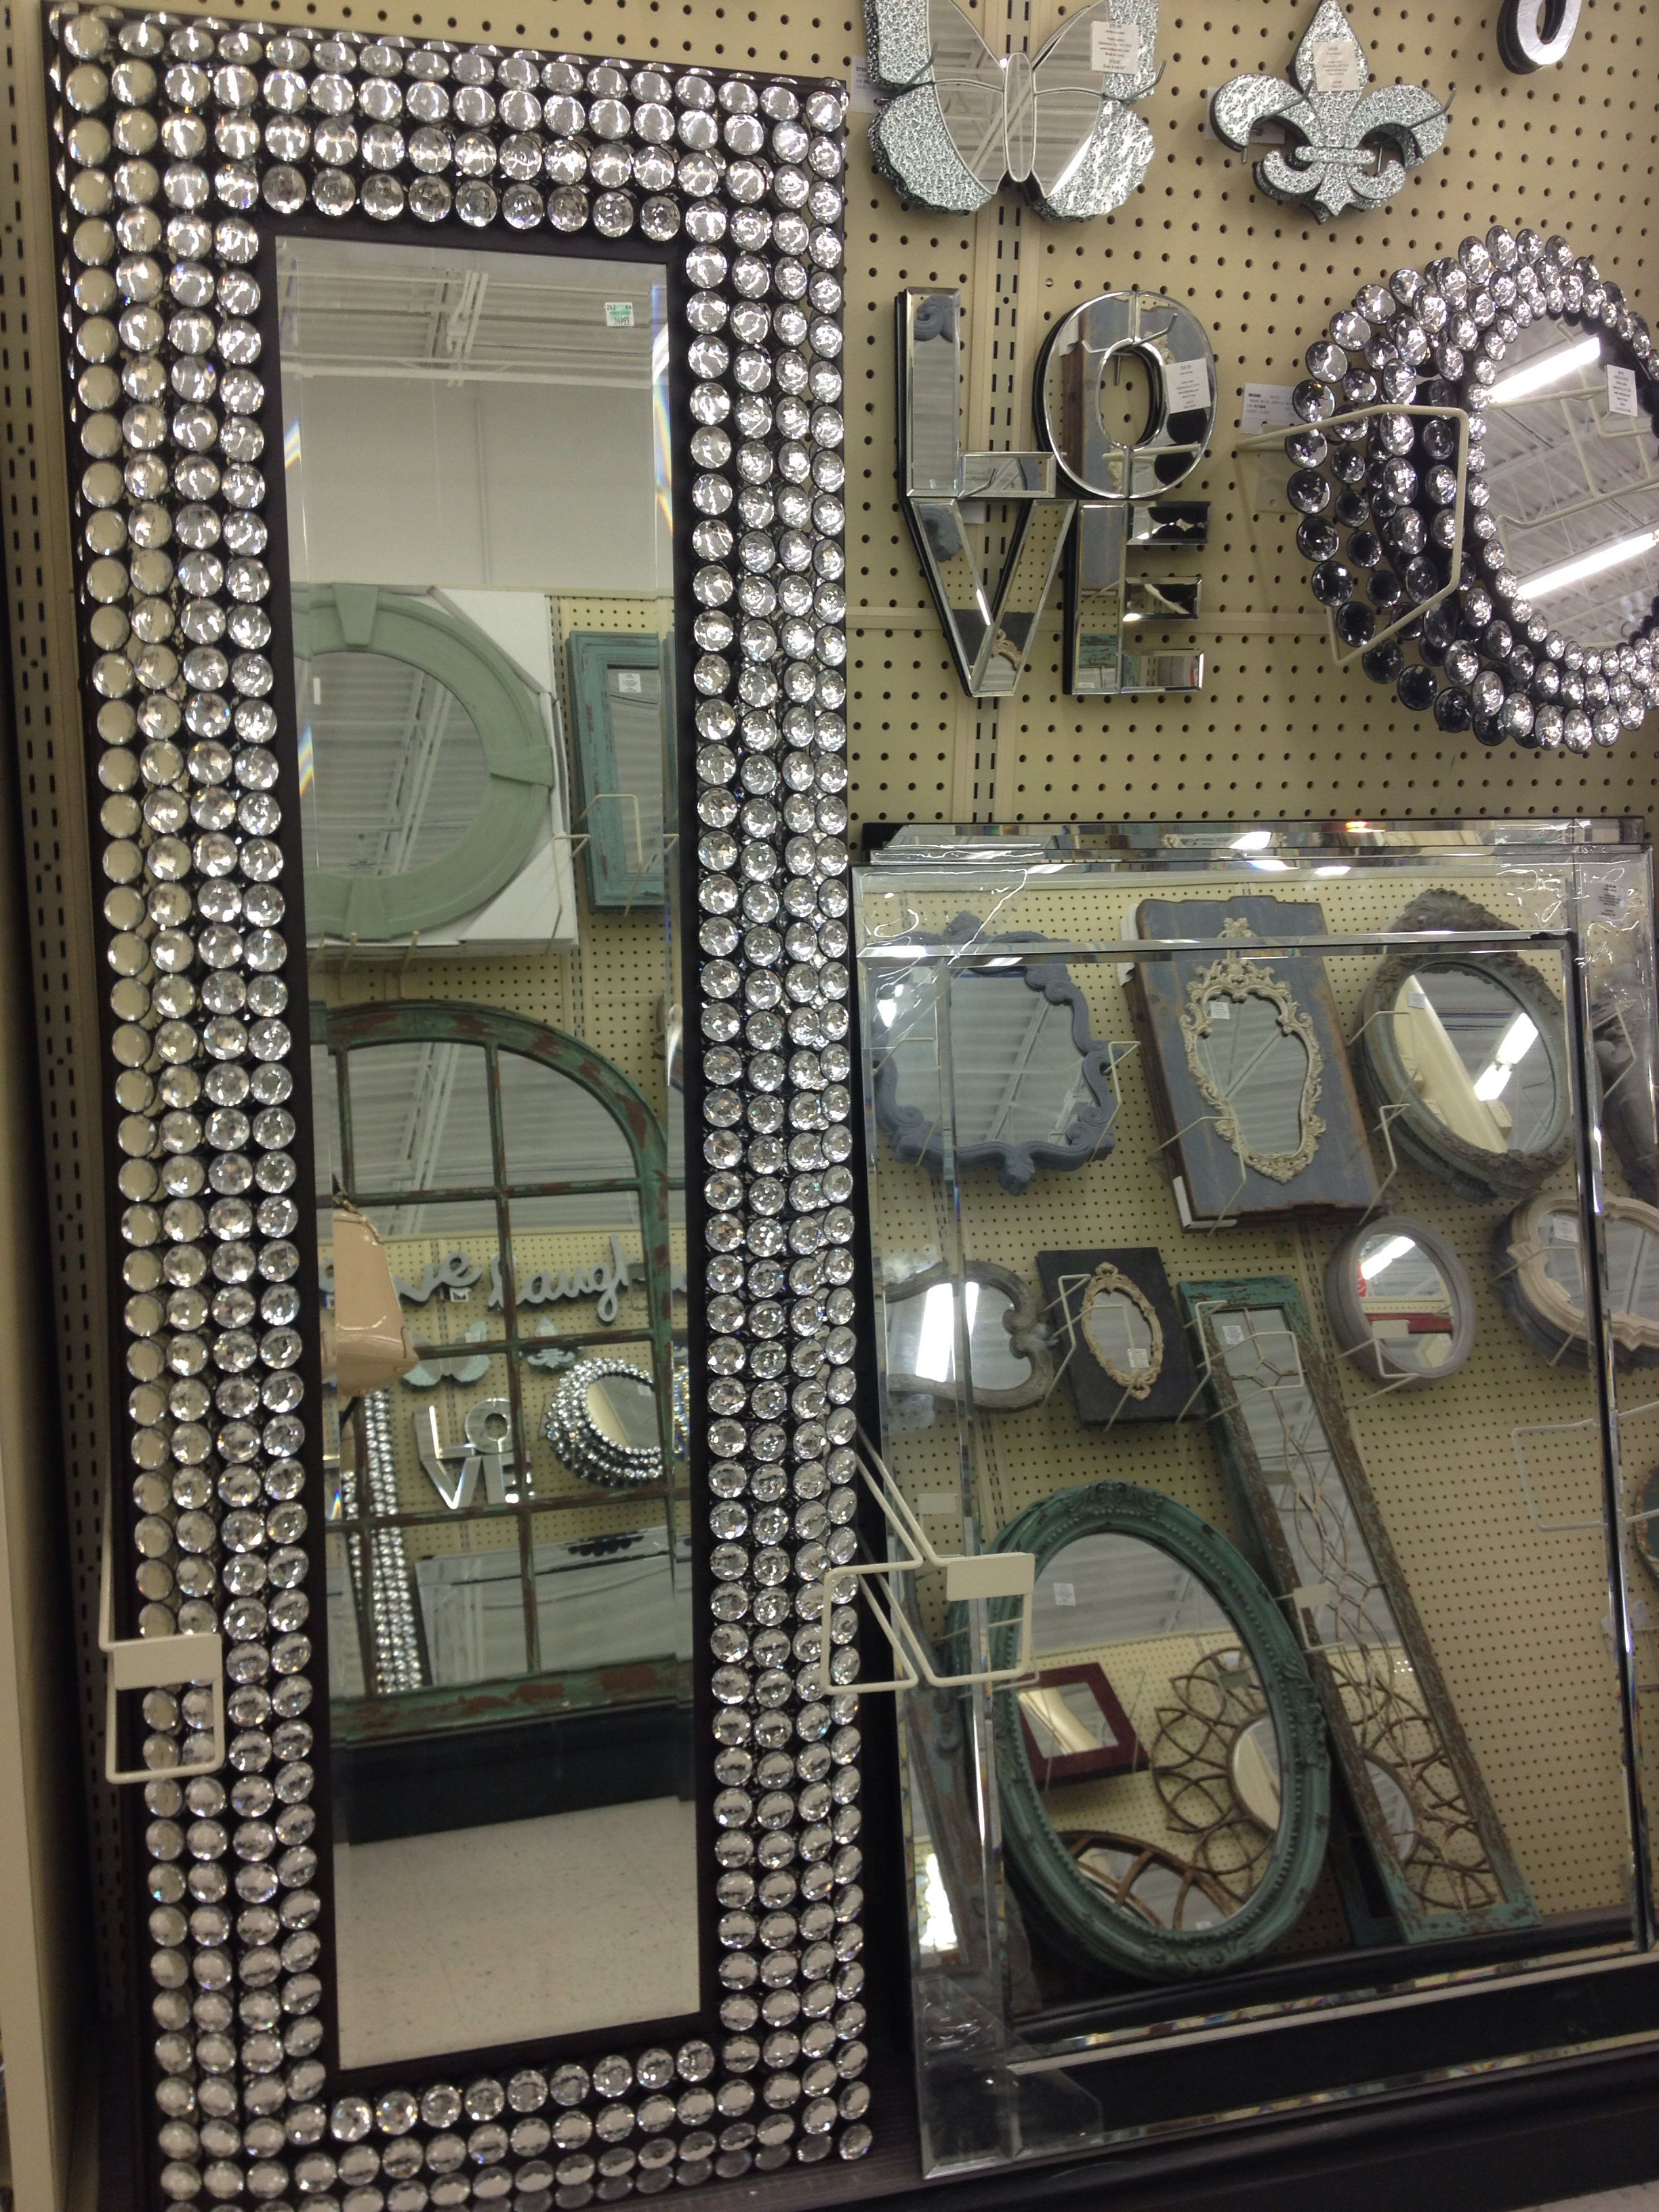 Obsessed With These Mirrors At Hobby Lobby Hobby Lobby Decor Bling Bedroom Hobby Lobby Furniture